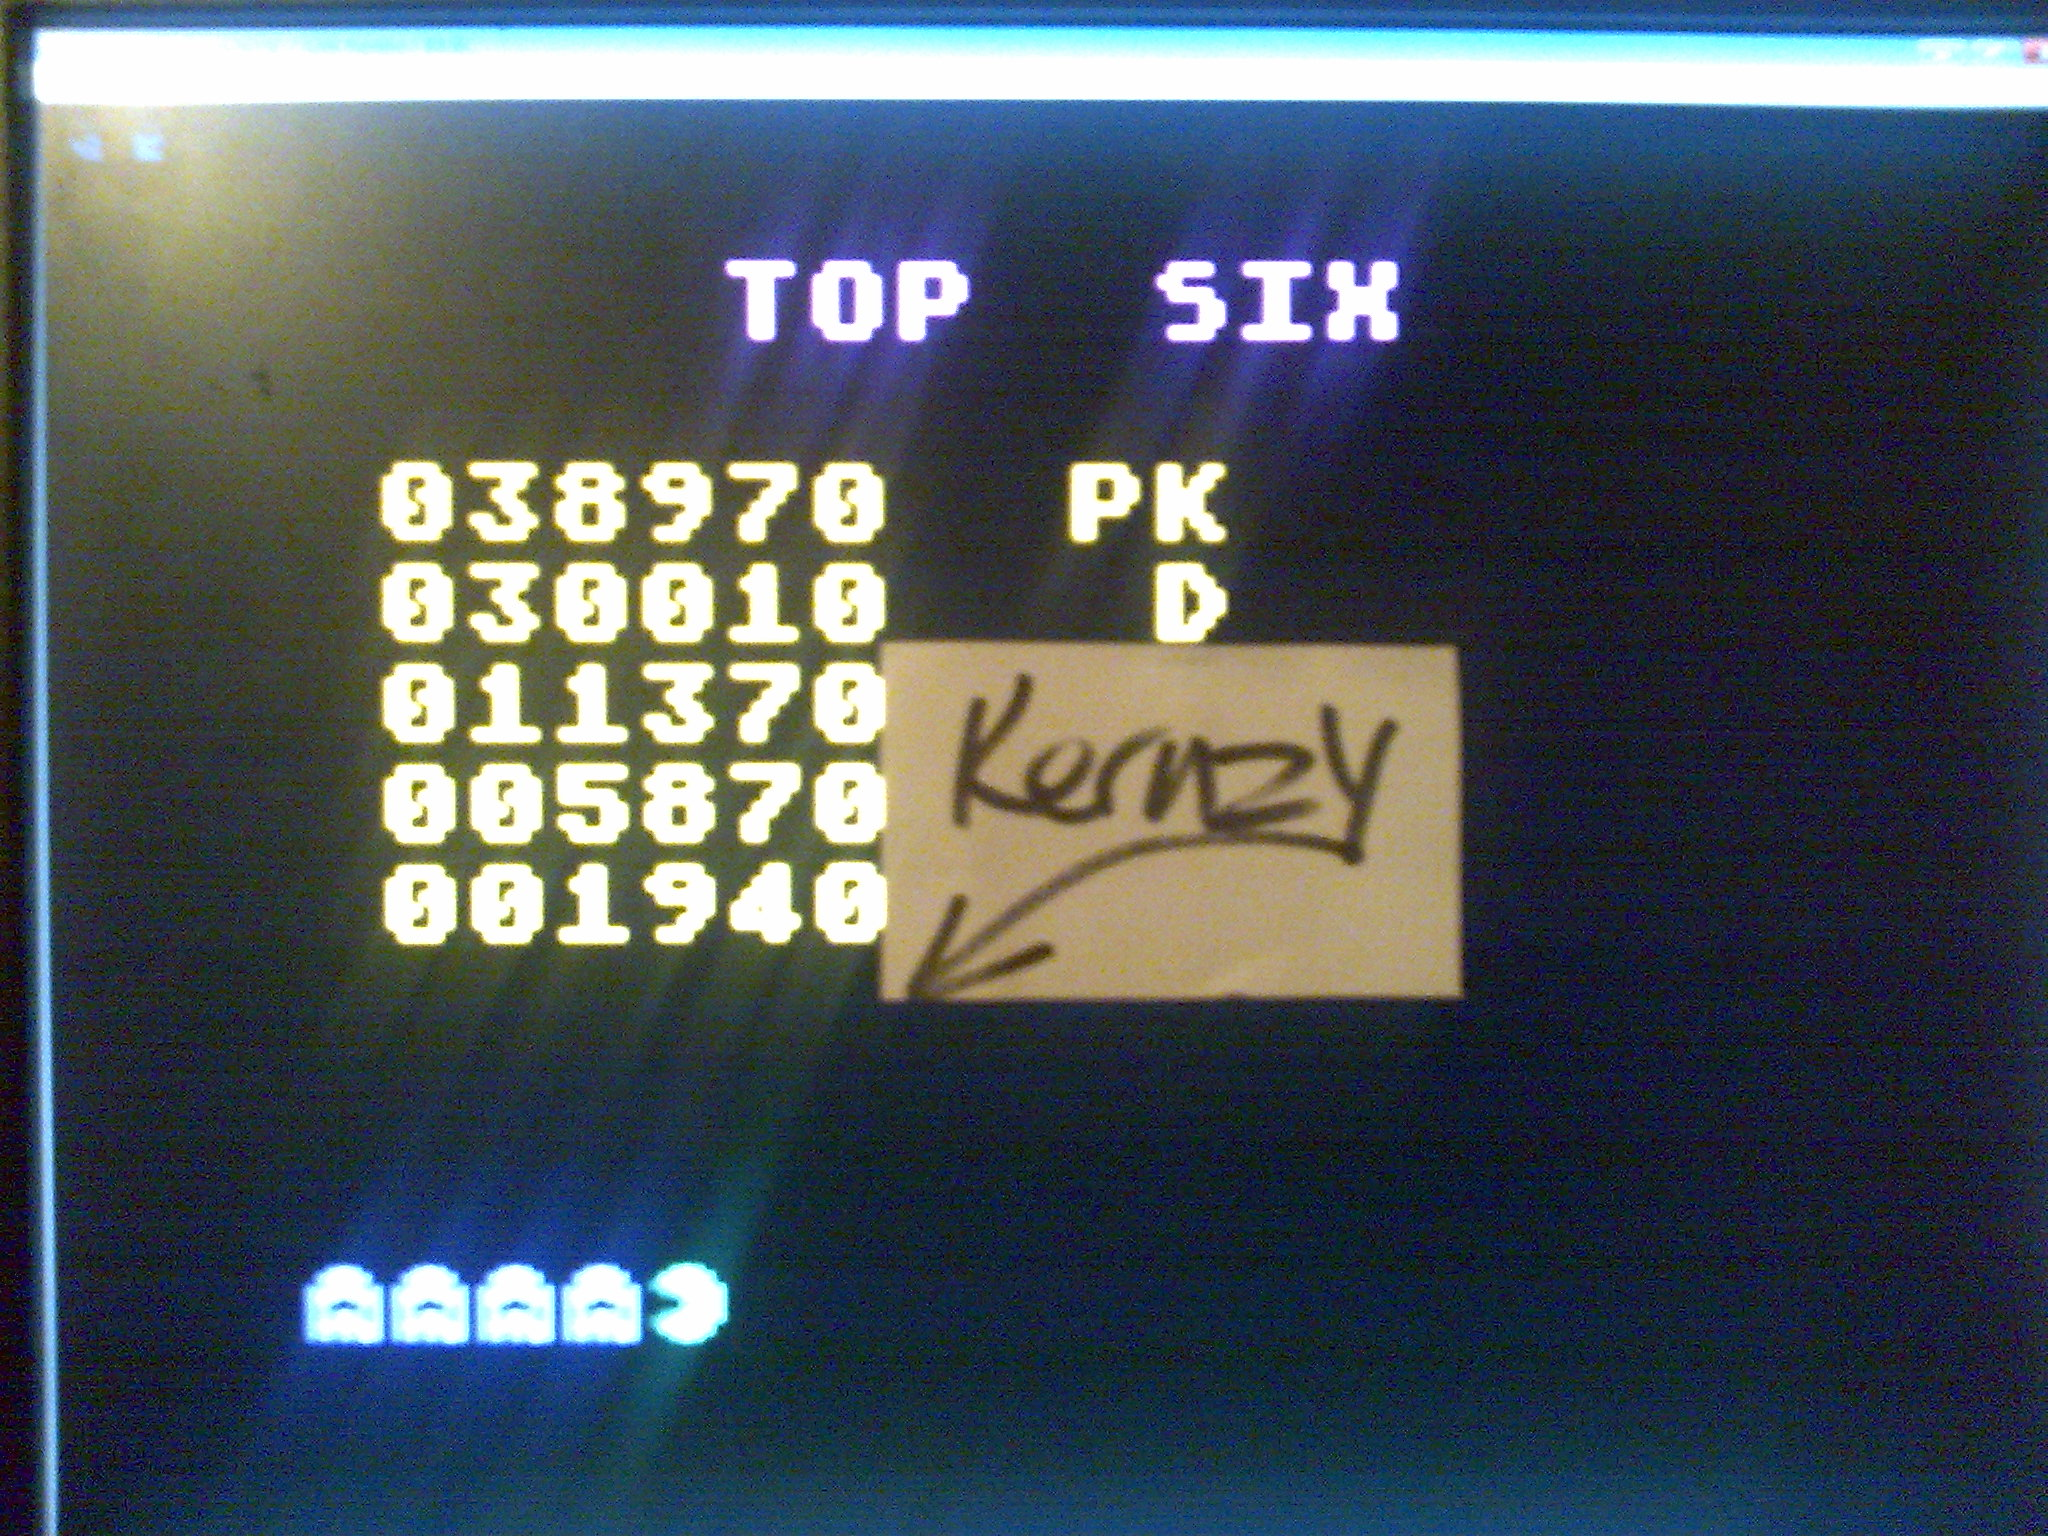 kernzy: Sir Pac-Man (Atari 400/800/XL/XE Emulated) 38,970 points on 2014-10-15 11:58:41